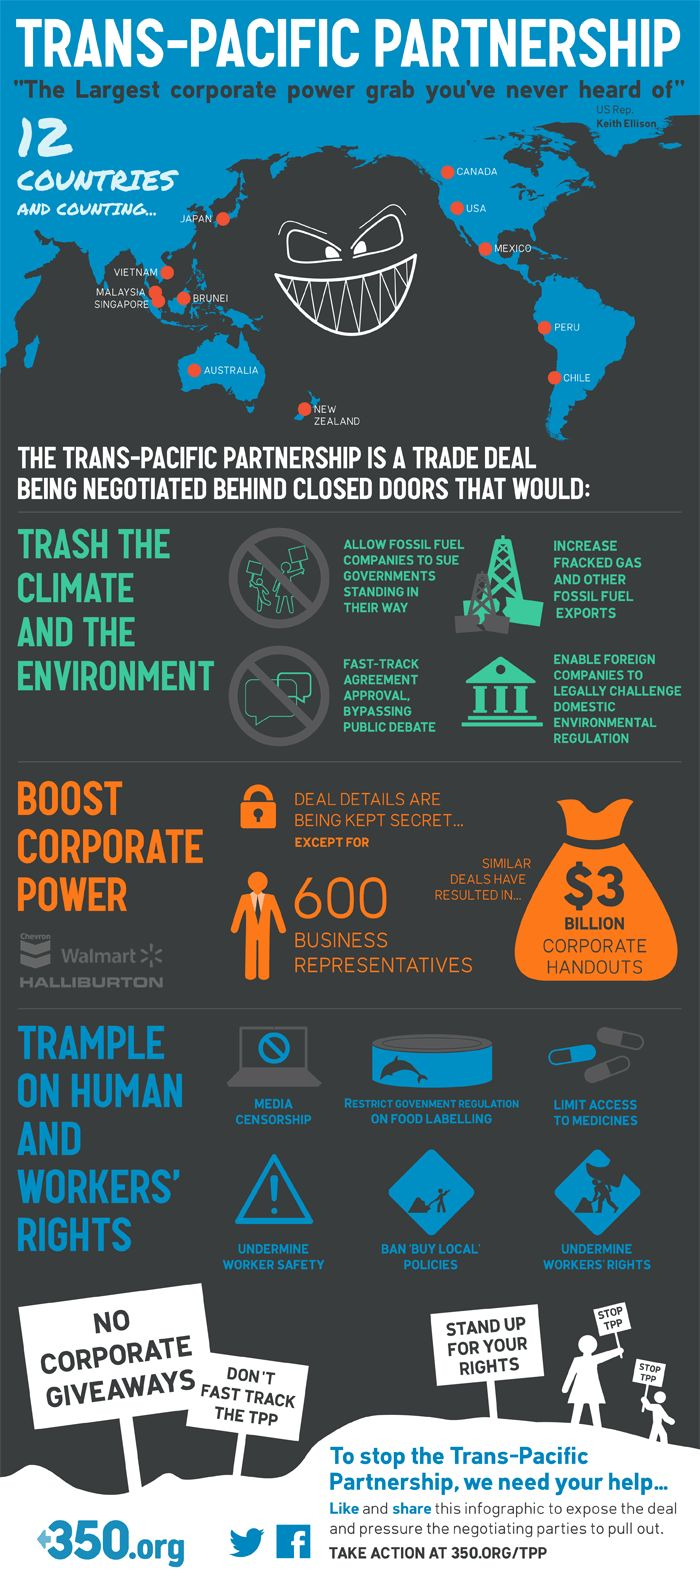 """One part of the TPP that shows why negotiators want to minimize public awareness of the agreement consists of provisions giving corporations the right – as is the case under the North American Free Trade Agreement (Nafta) – to directly sue governments for regulations that infringe upon their profits or potential profits."" http://www.theguardian.com/commentisfree/2013/nov/19/trans-pacific-partnership-corporate-usurp-congress"